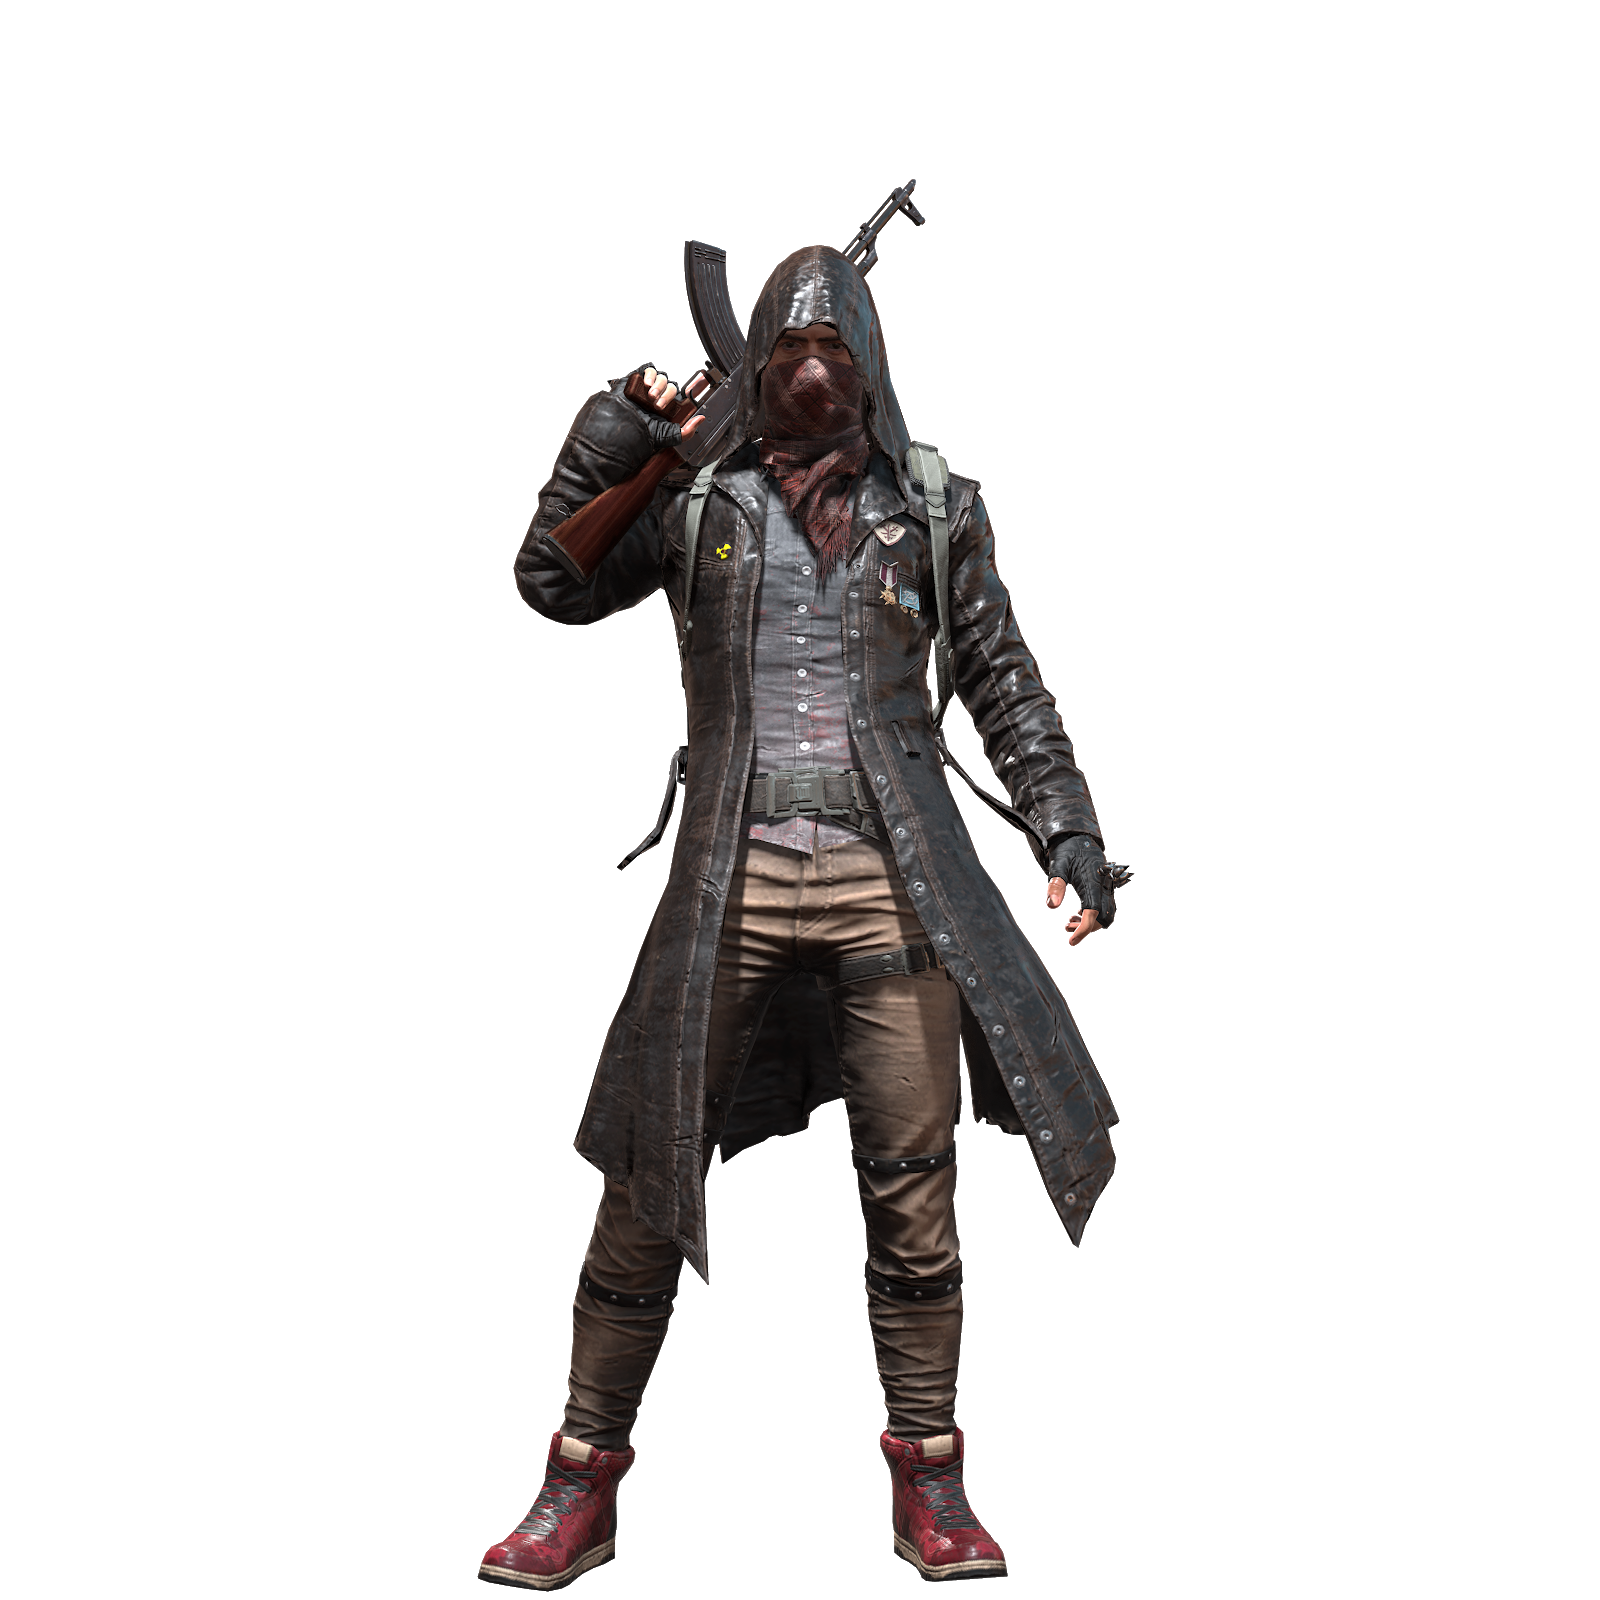 Pubg character png. Playerunknown set pioneer shirt